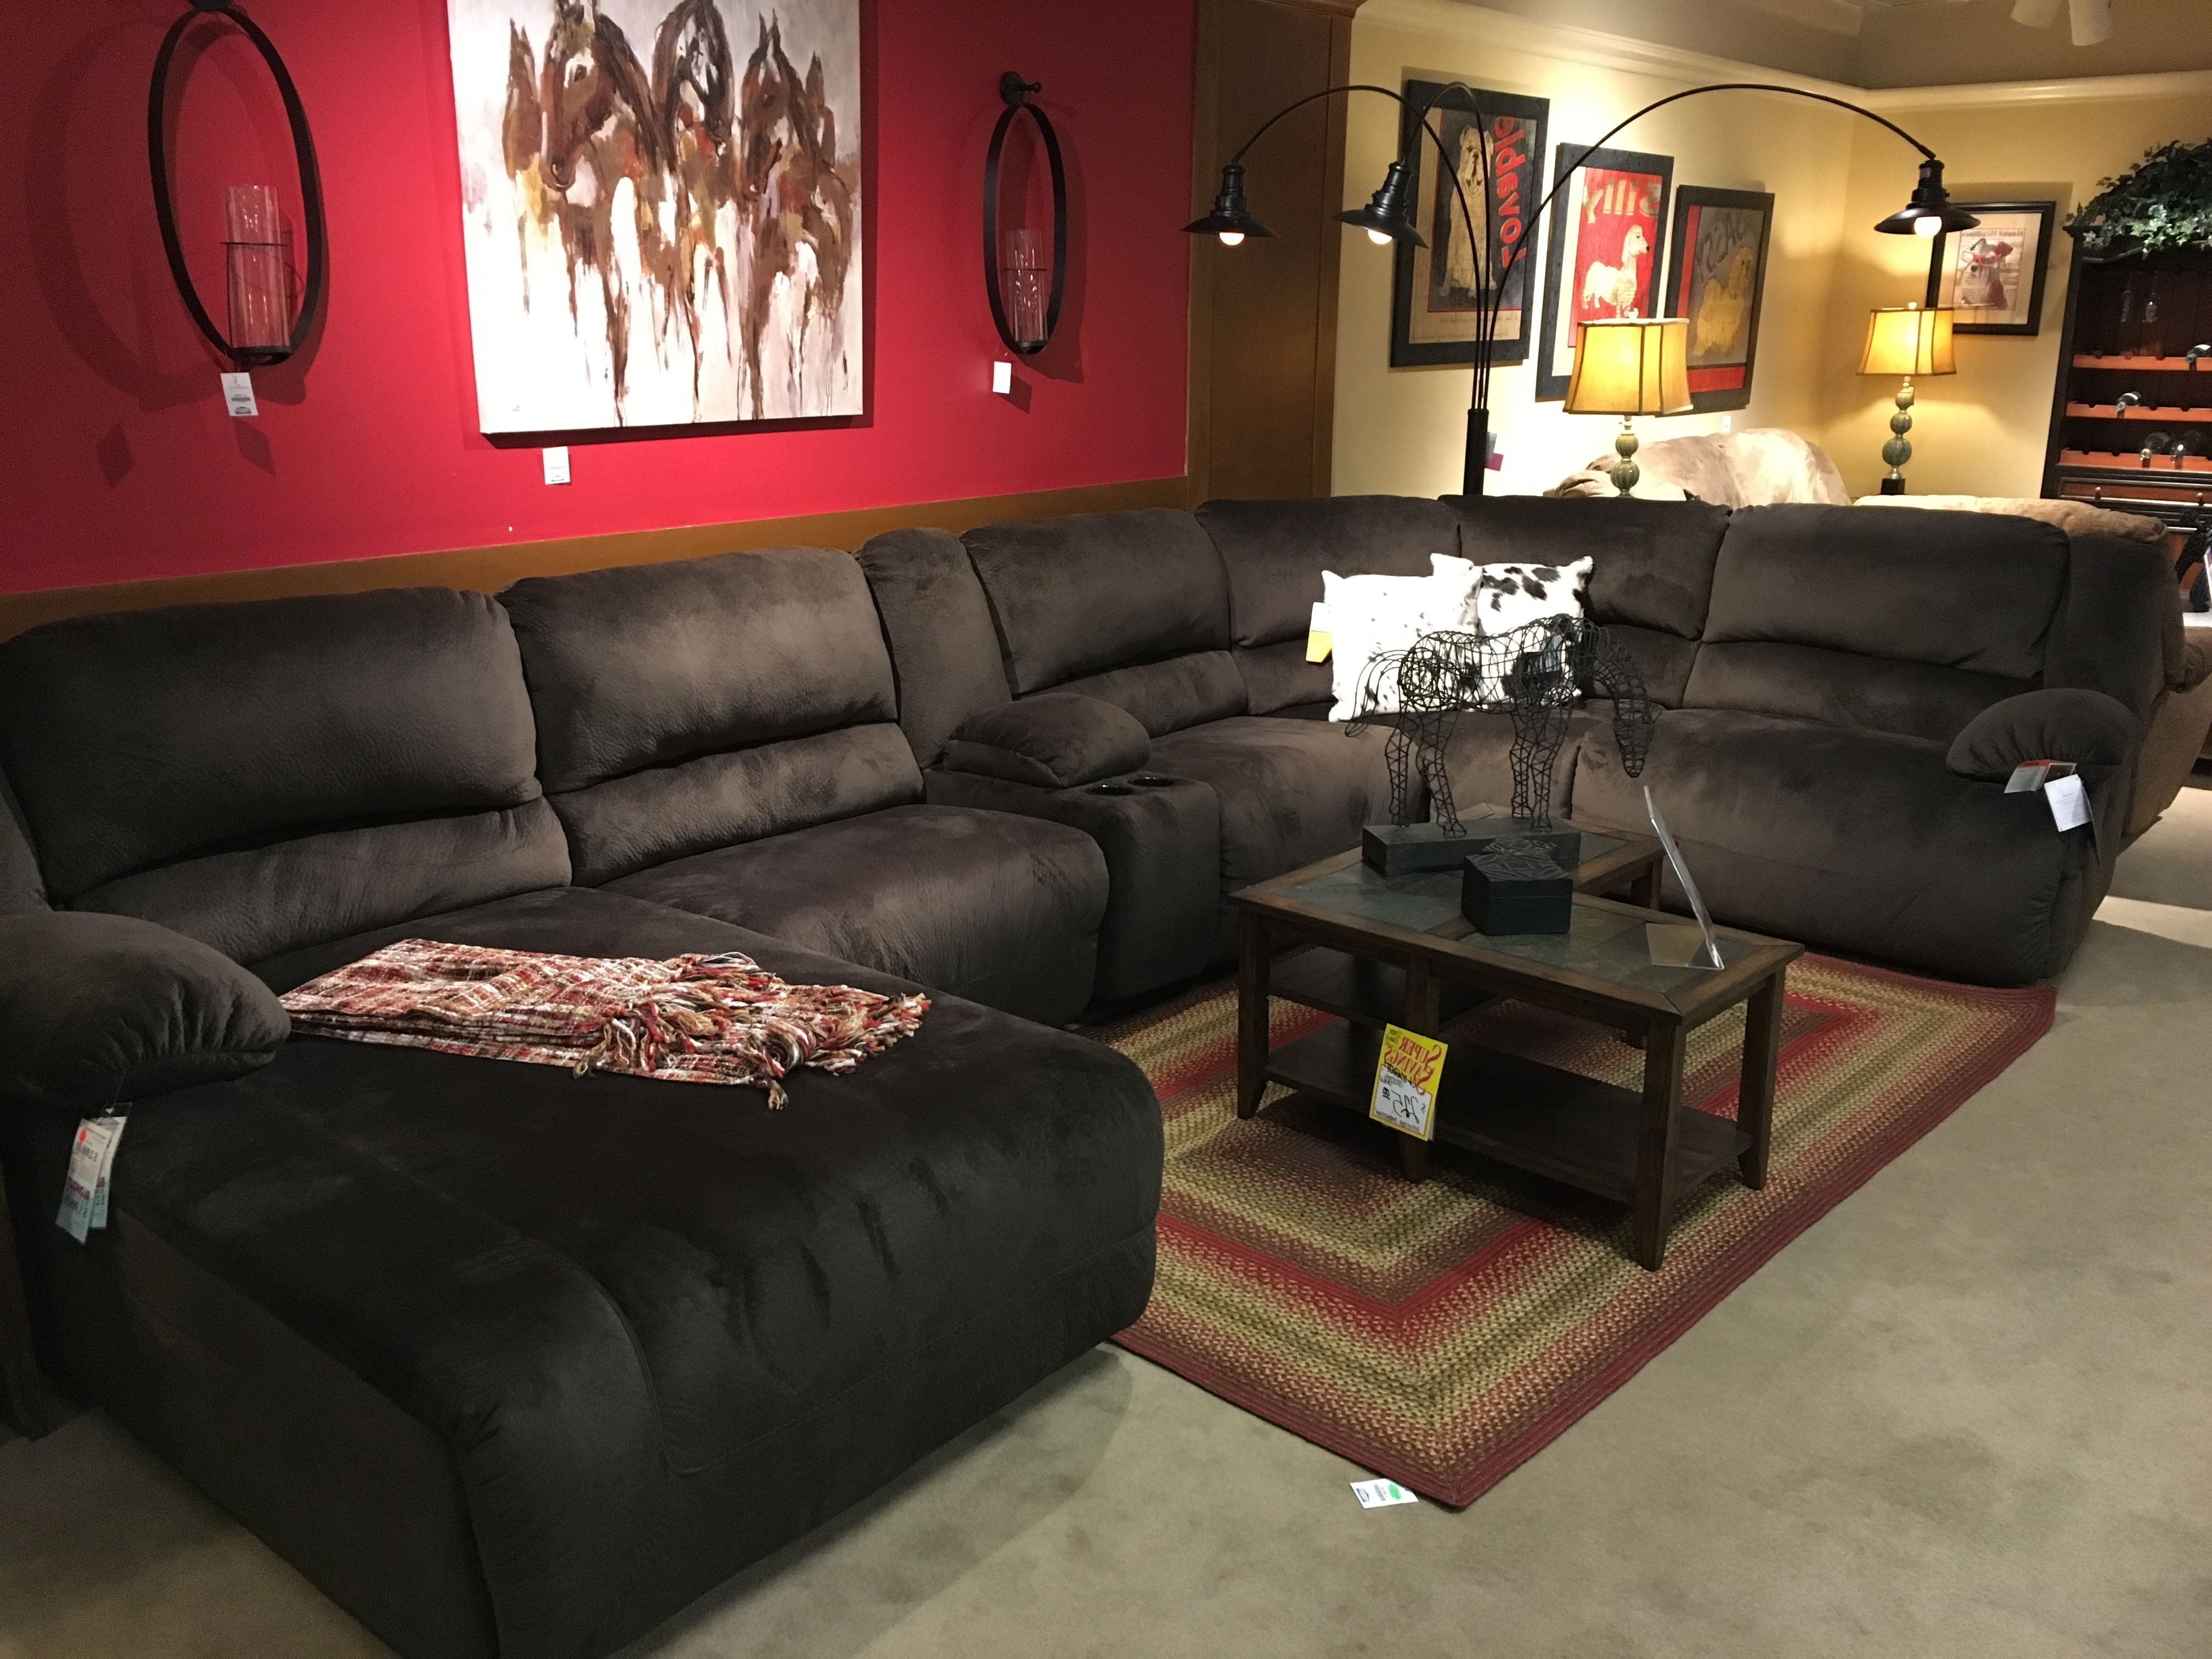 Bad Boy Furniture Sectional Sofas | Sofa Review In Sectional Sofas At Bad Boy (View 7 of 10)